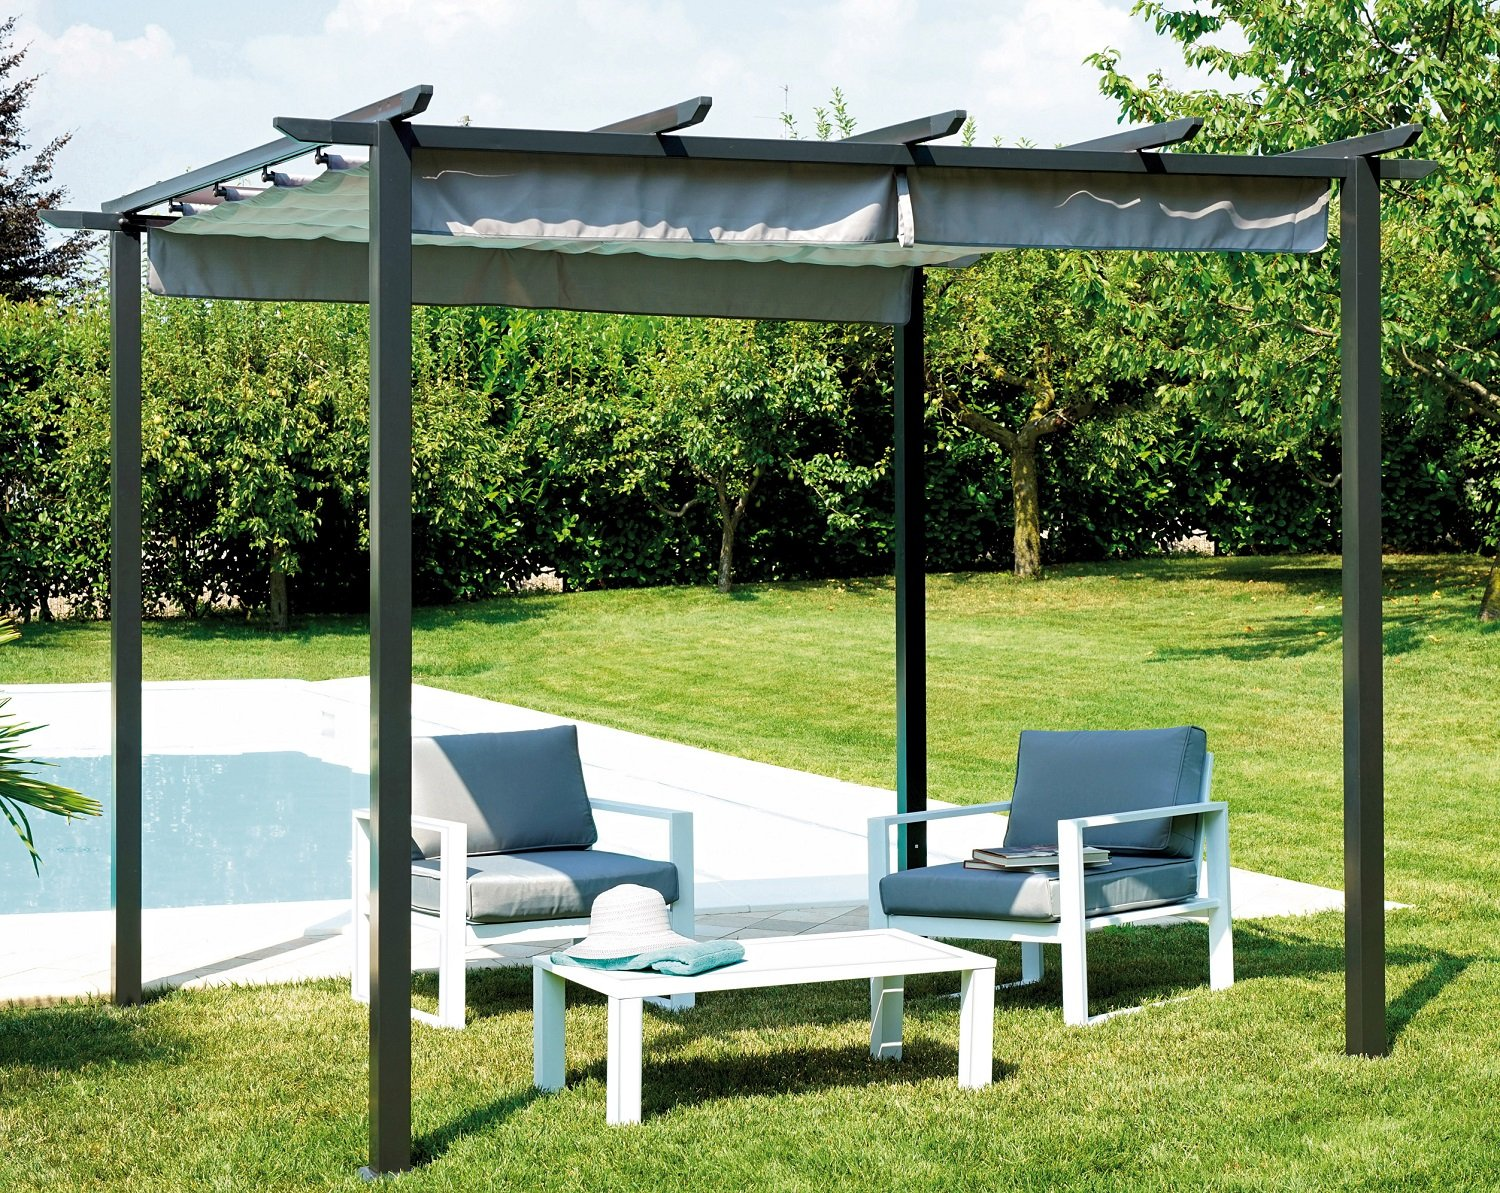 m bel garten gaz503 pavillon eisen pergola mit dach schiebet r 3 x 3 mt g nstig kaufen. Black Bedroom Furniture Sets. Home Design Ideas